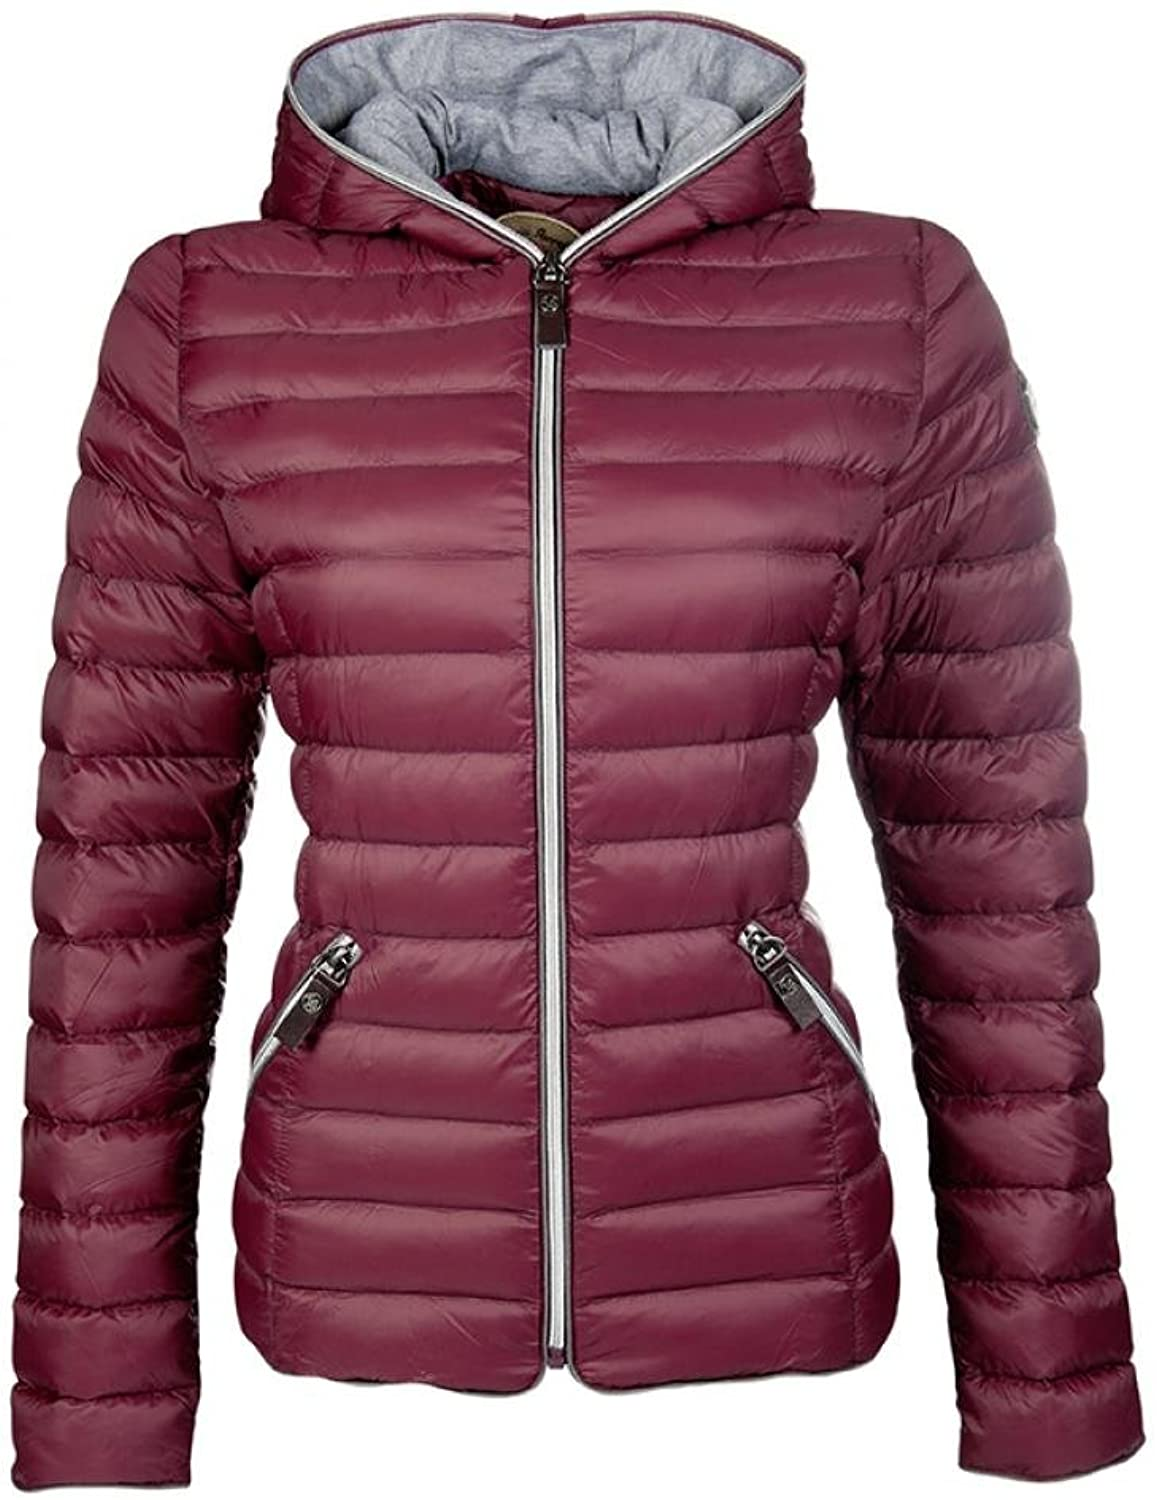 Lauria Garrelli by HKM quilted jacket, Scotland